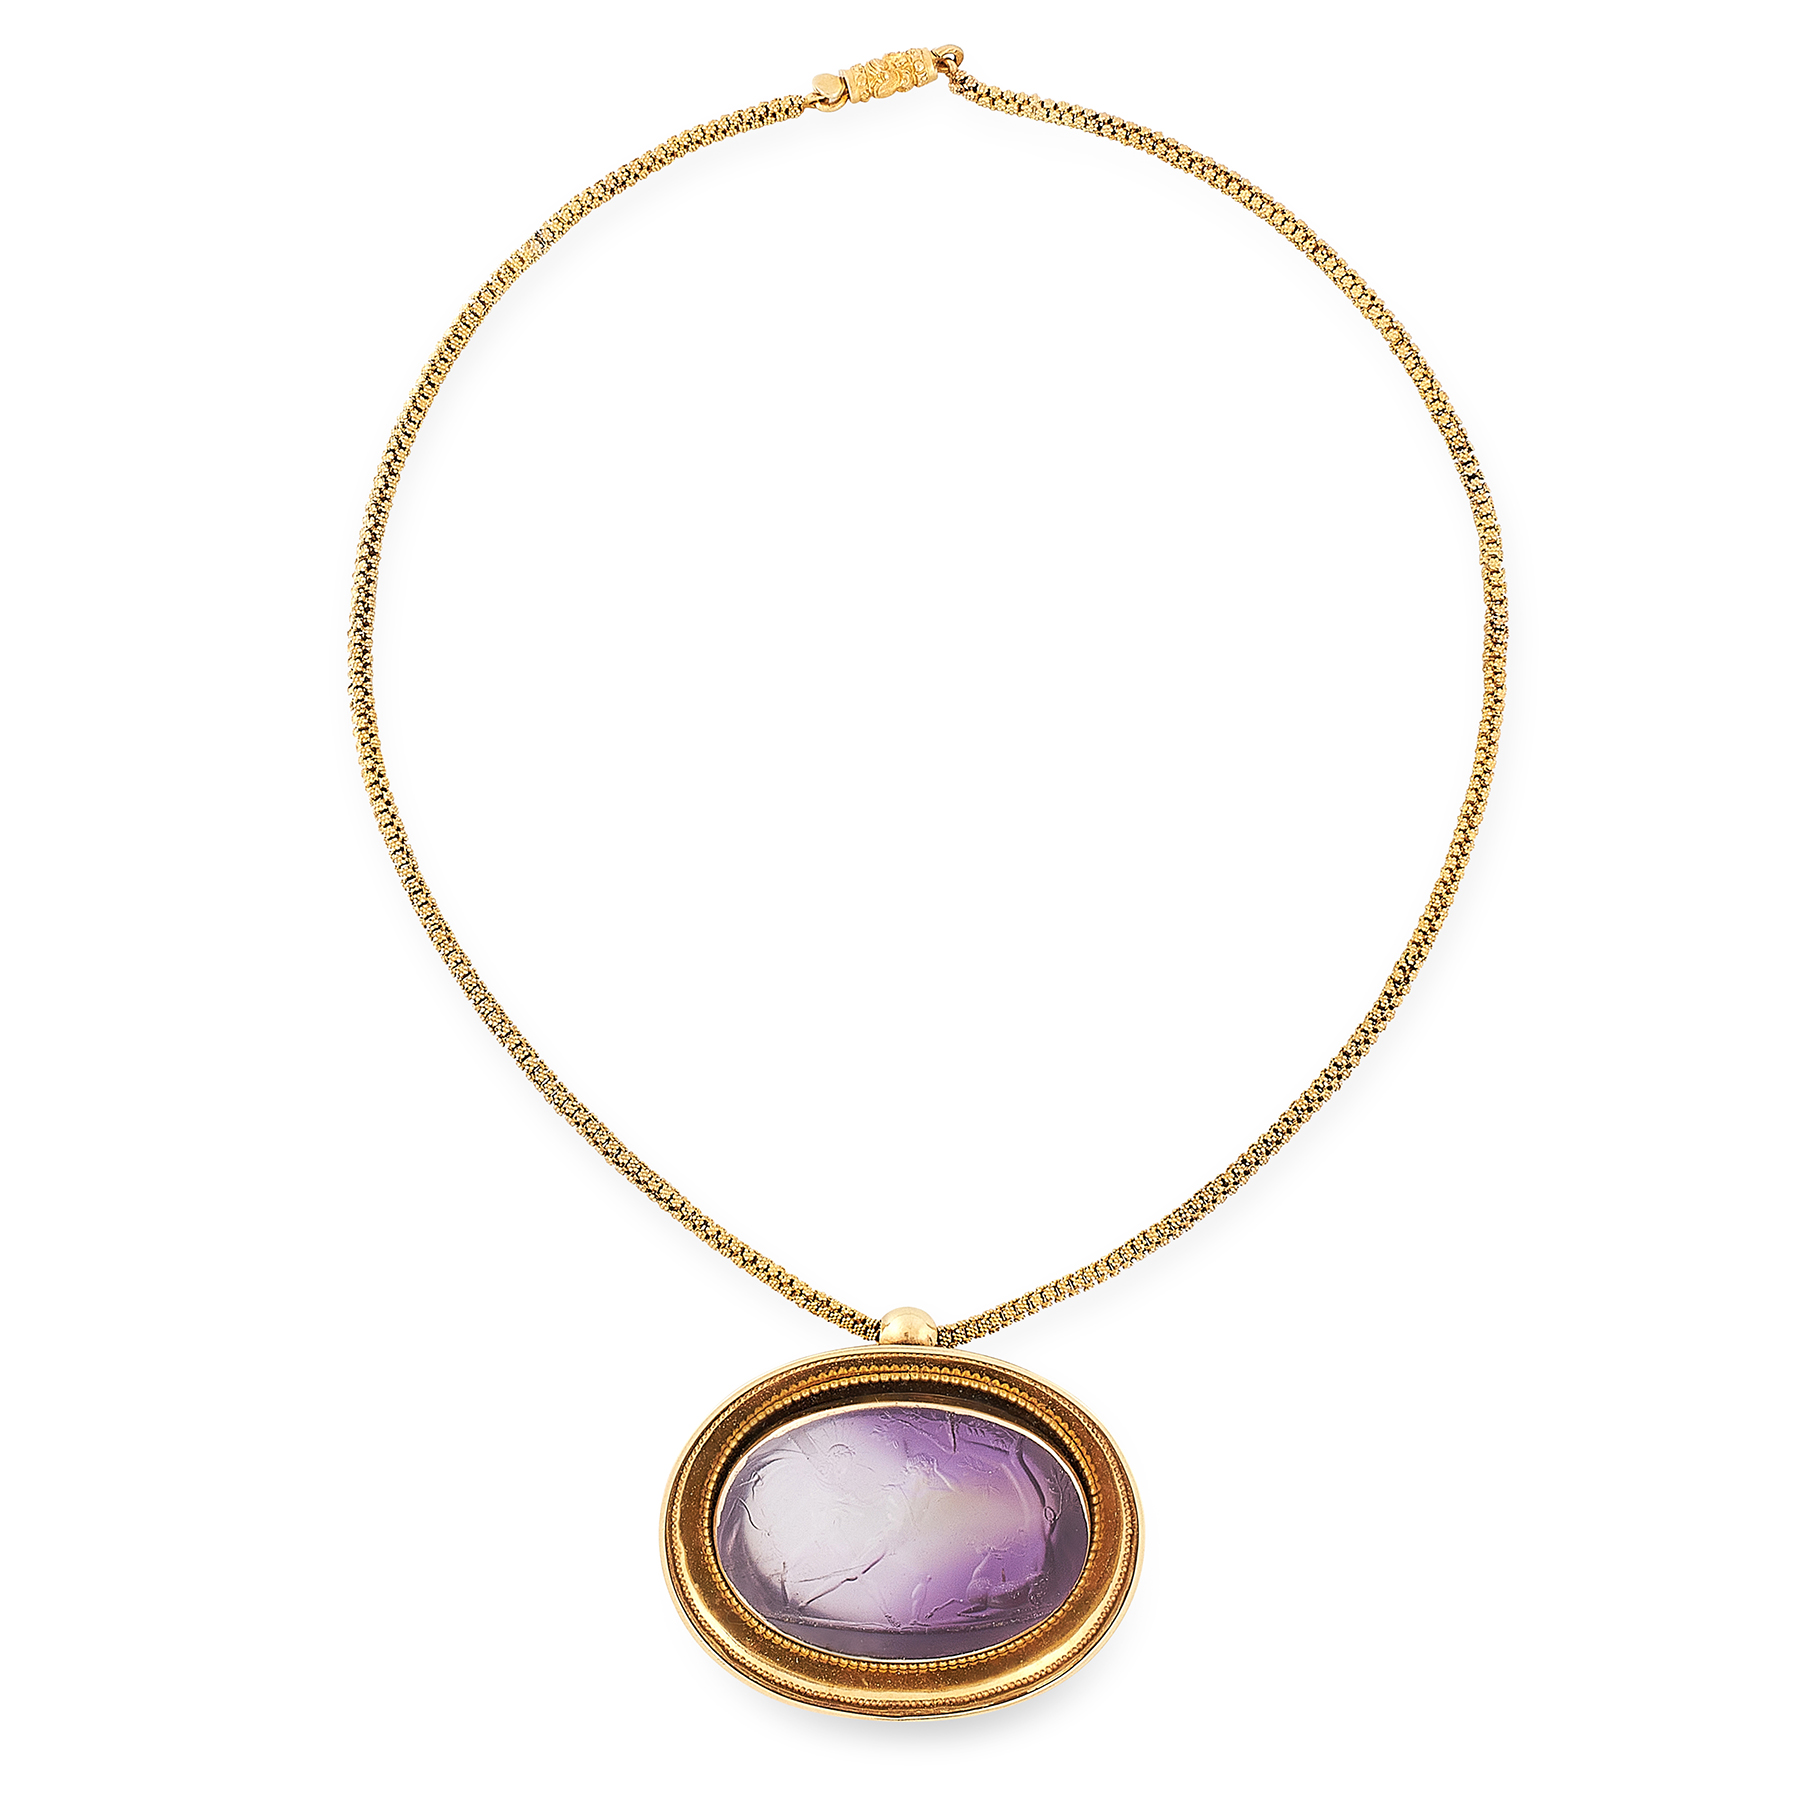 AN ANTIQUE CARVED AMETHYST INTAGLIO PENDANT AND CHAIN, FORMERLY BELONGING TO PRINCE STANISLAS